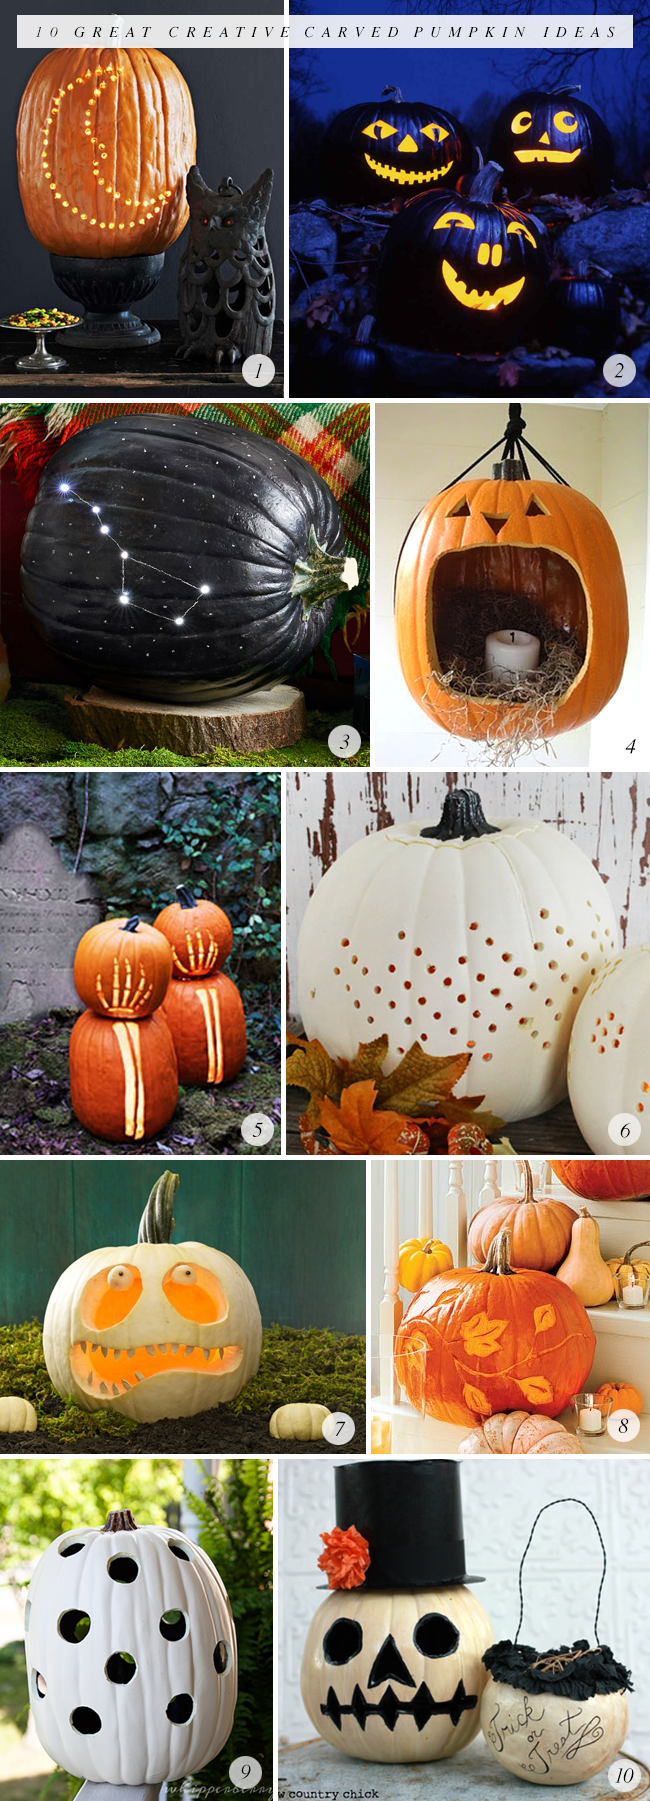 10 Great Creative Carved Pumpkin Ideas (via Bubby and Bean)